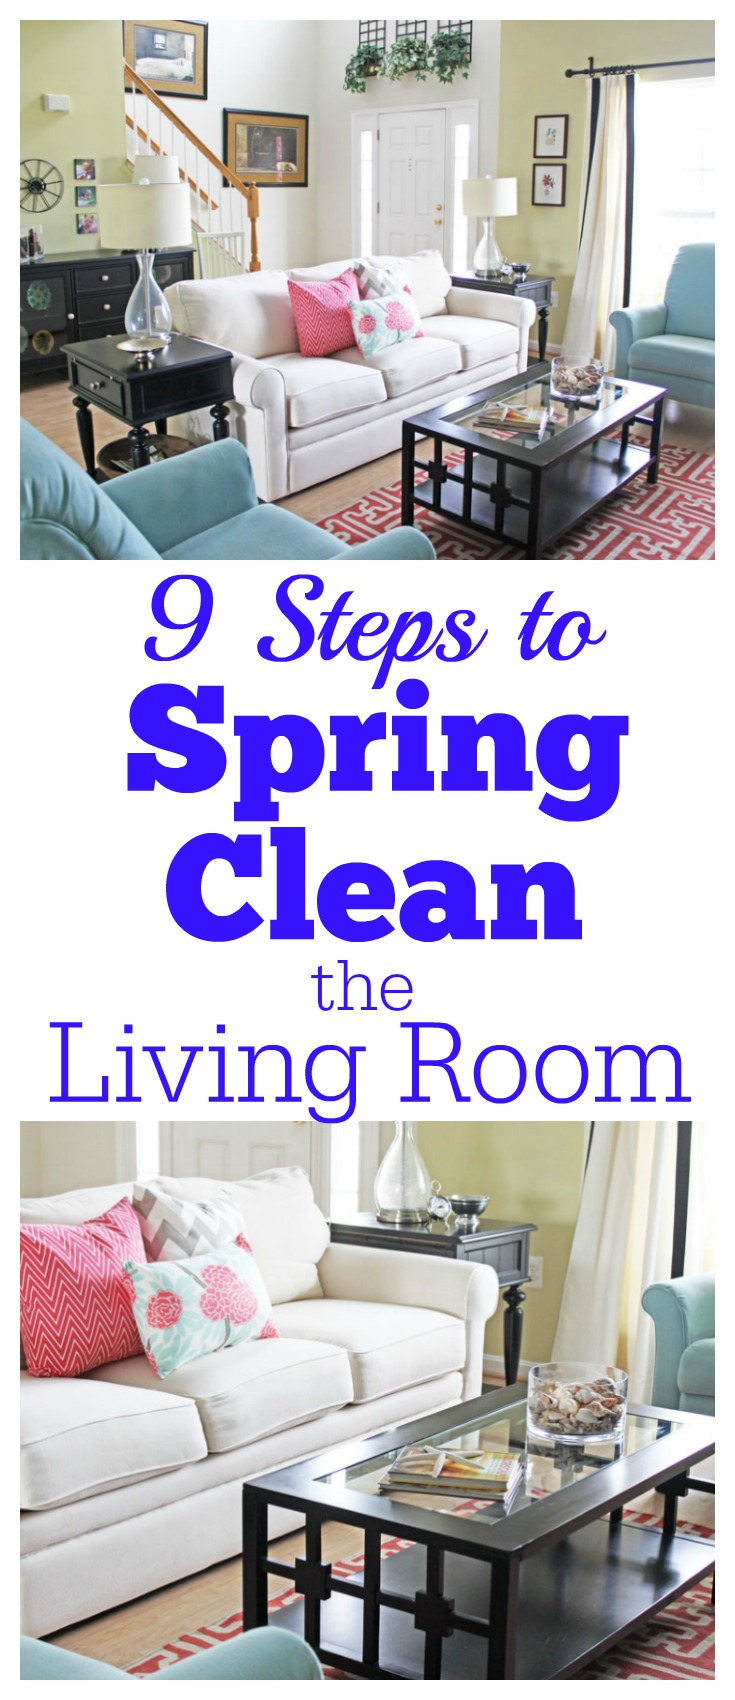 spring cleaning the living room